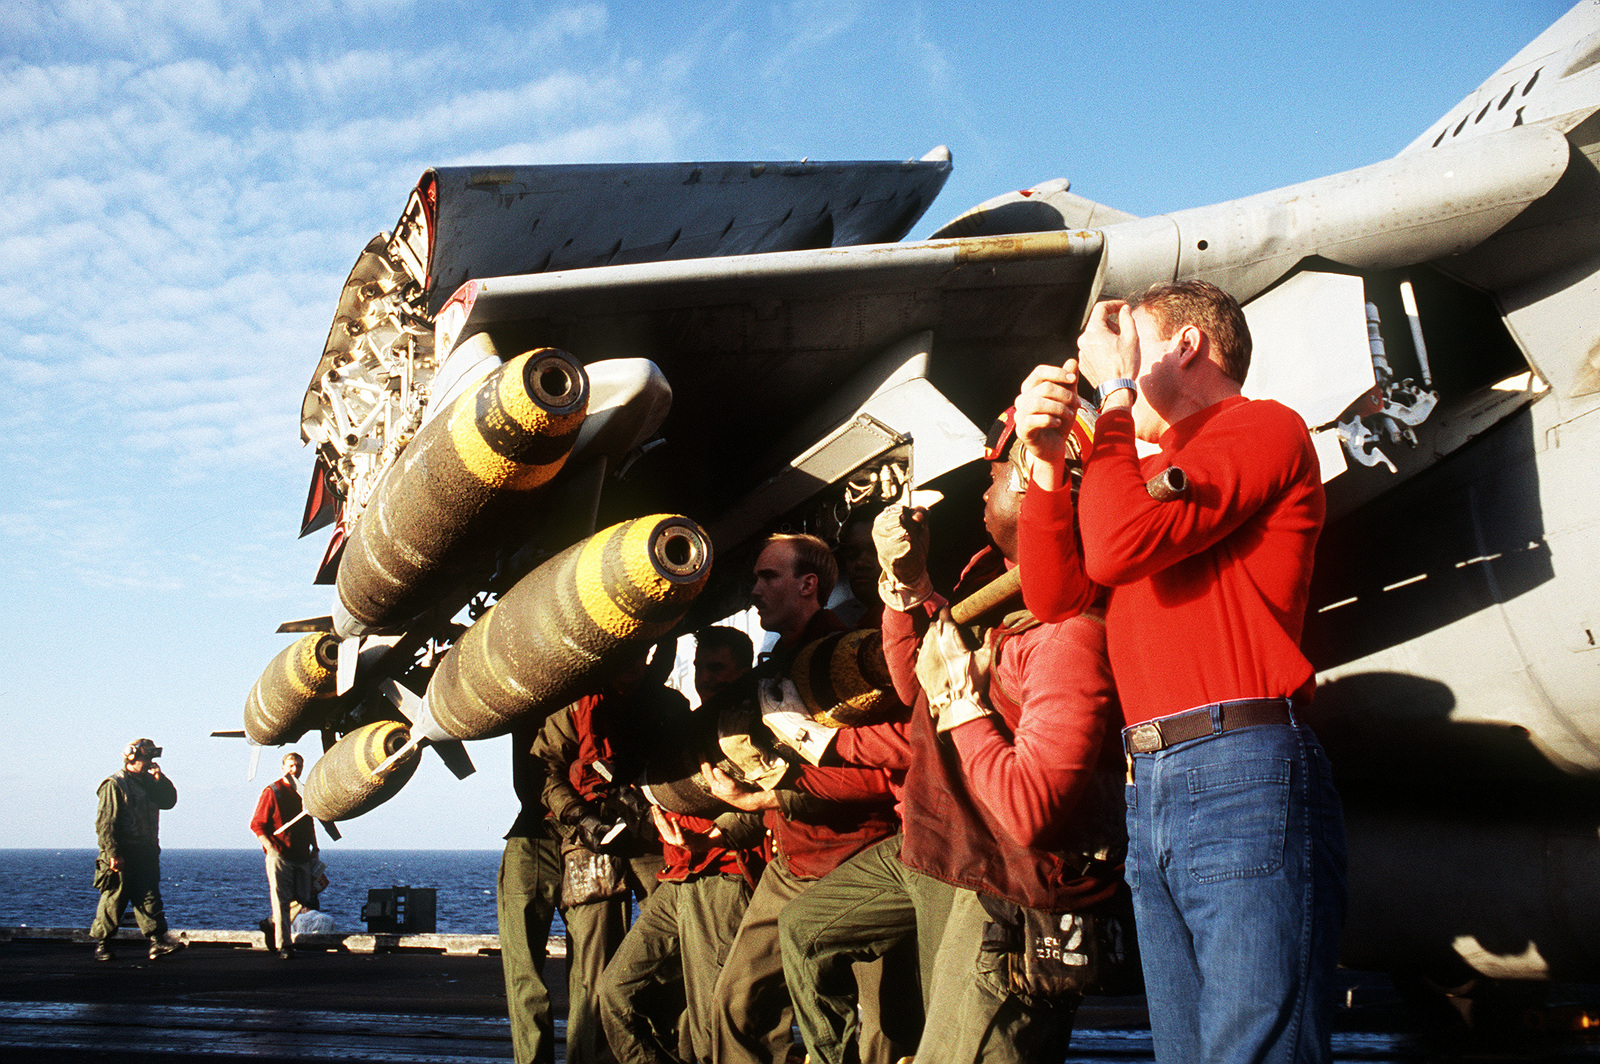 Aviation ordnancemen from Attack Squadron 75 (VA-75) hoist another Mark 82 500-pound bomb up to a multiple ejector rack on the wing of one of their squadron's A-6E Intruder aircraft on the flight deck of the aircraft carrier USS JOHN F. KENNEDY (CV-67) during Operation Desert Storm